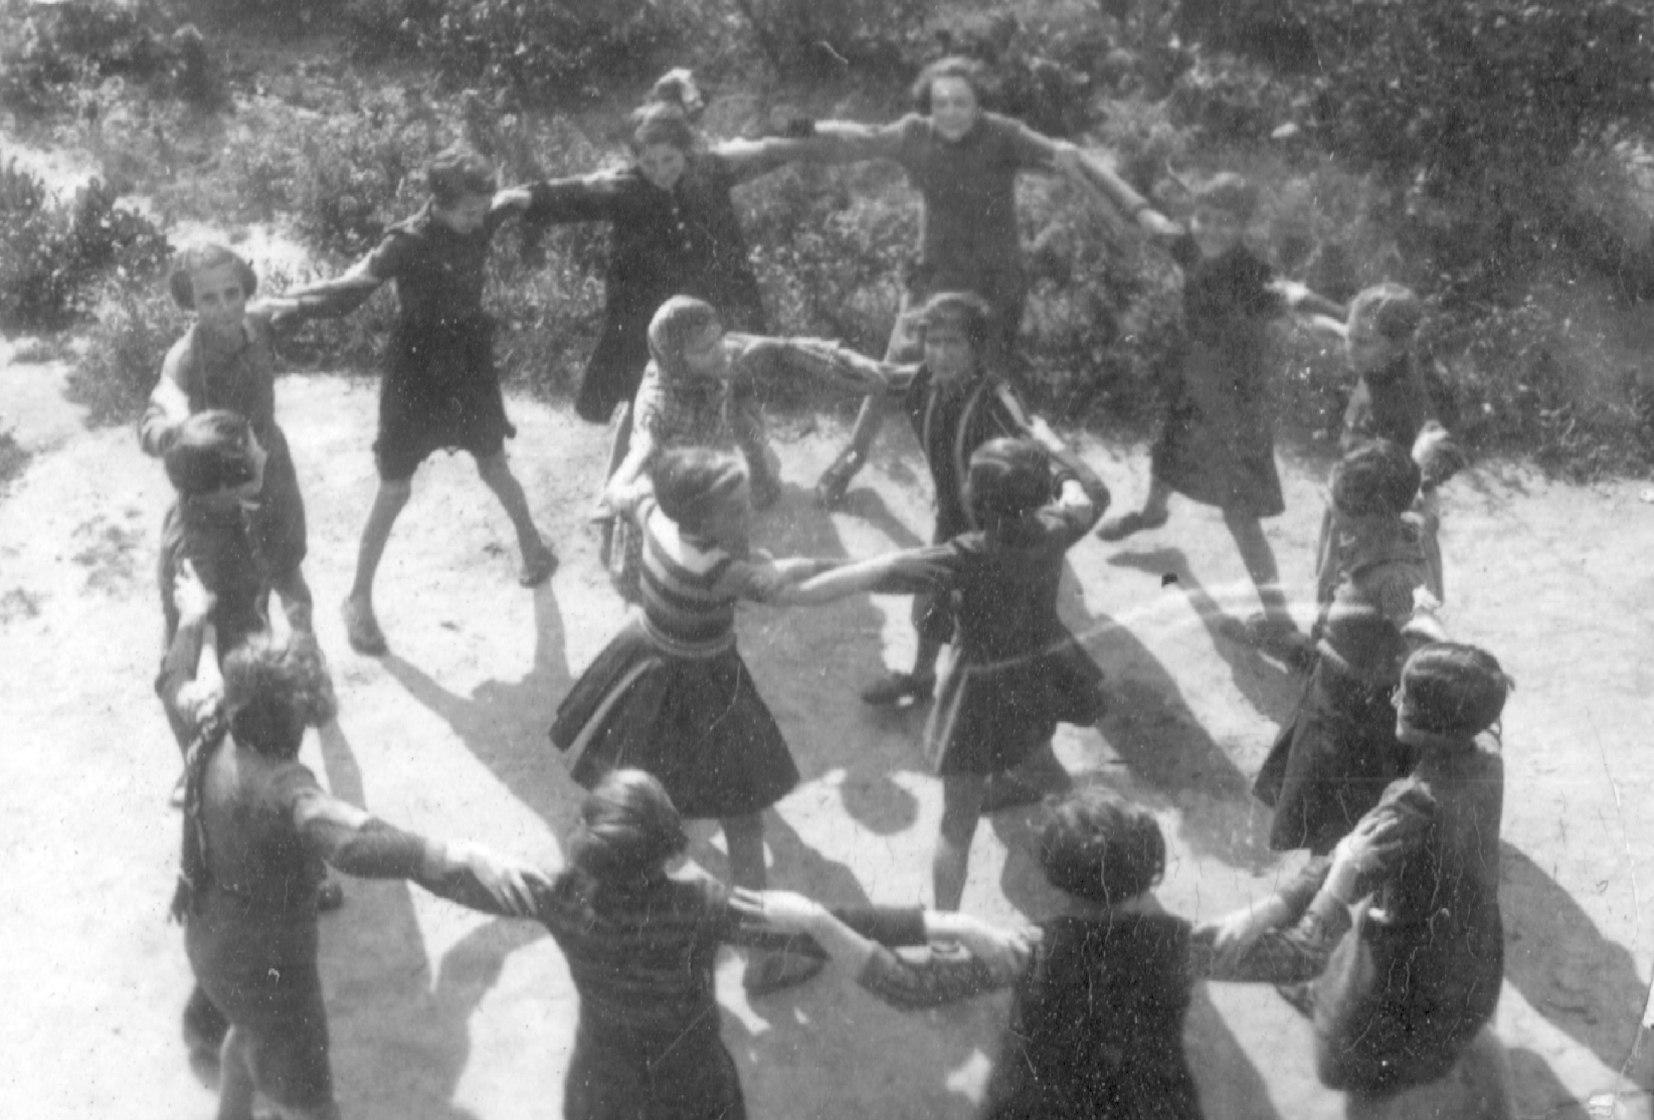 Children playing in the Lodz ghetto 1941